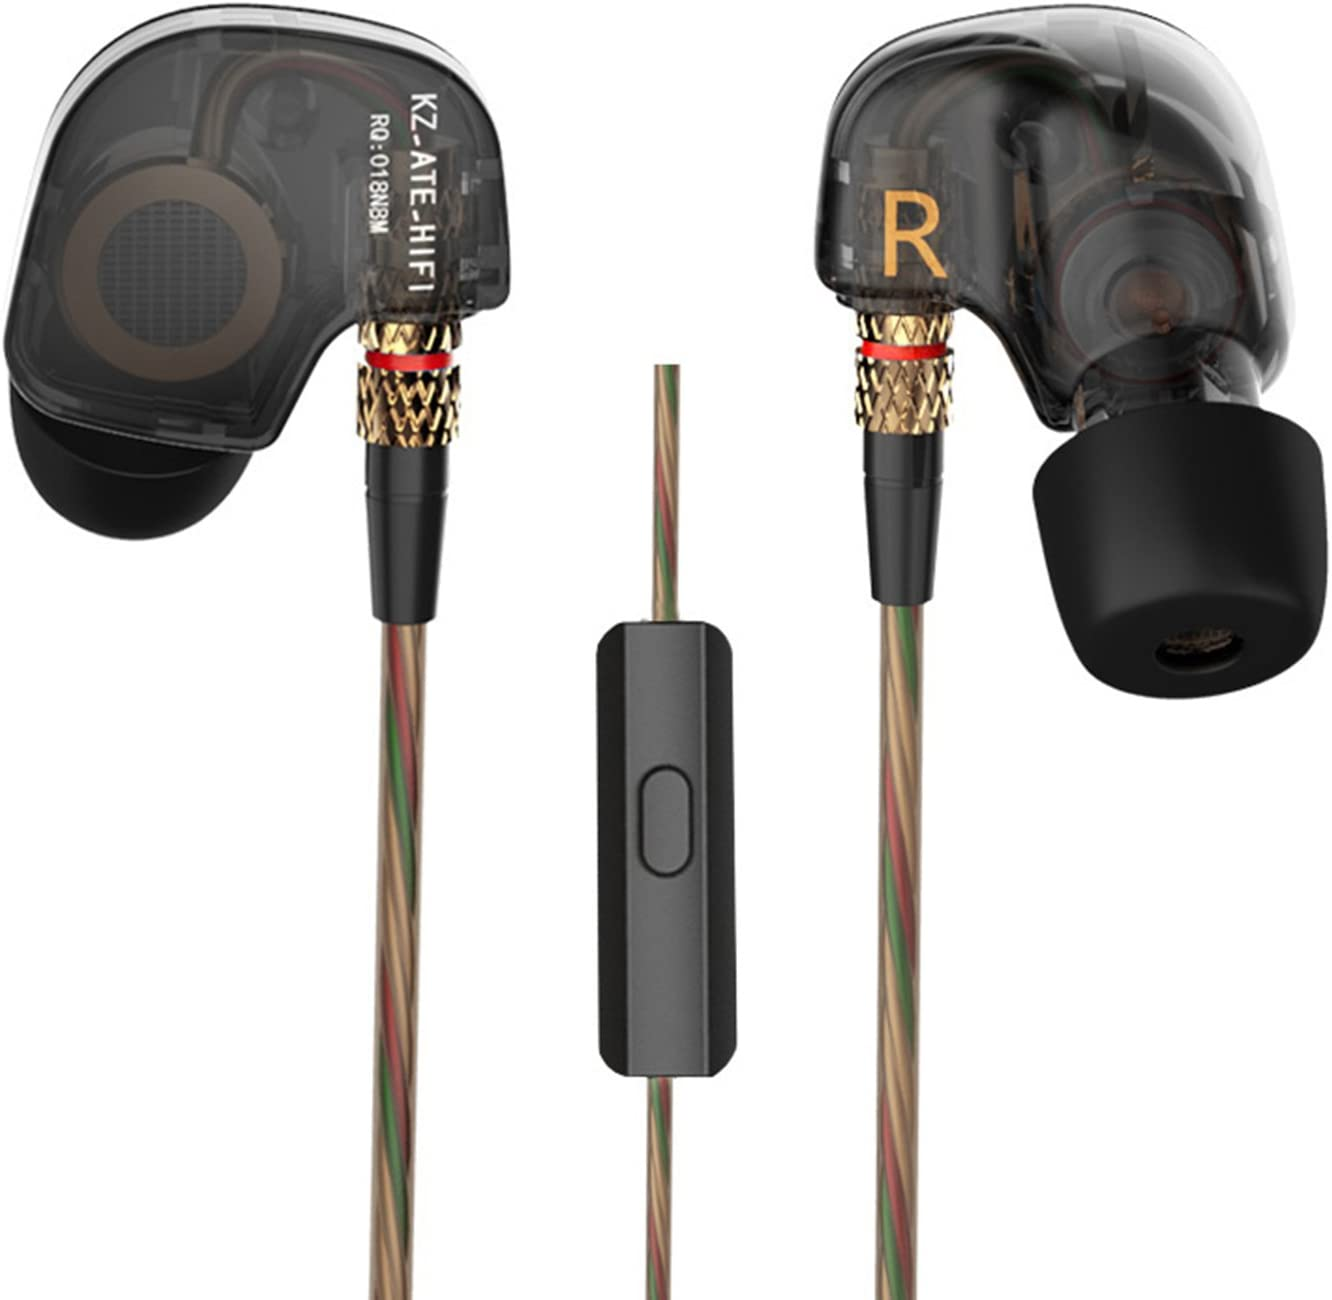 KZ ATE Dynamic Balanced Armature IEMS in Ear HiFi Monitors DJ Studio Stereo Music Earphones Headphone Earbuds for Mobile Phone iPhone MP3 MP4 Music Player (Black with Mic)